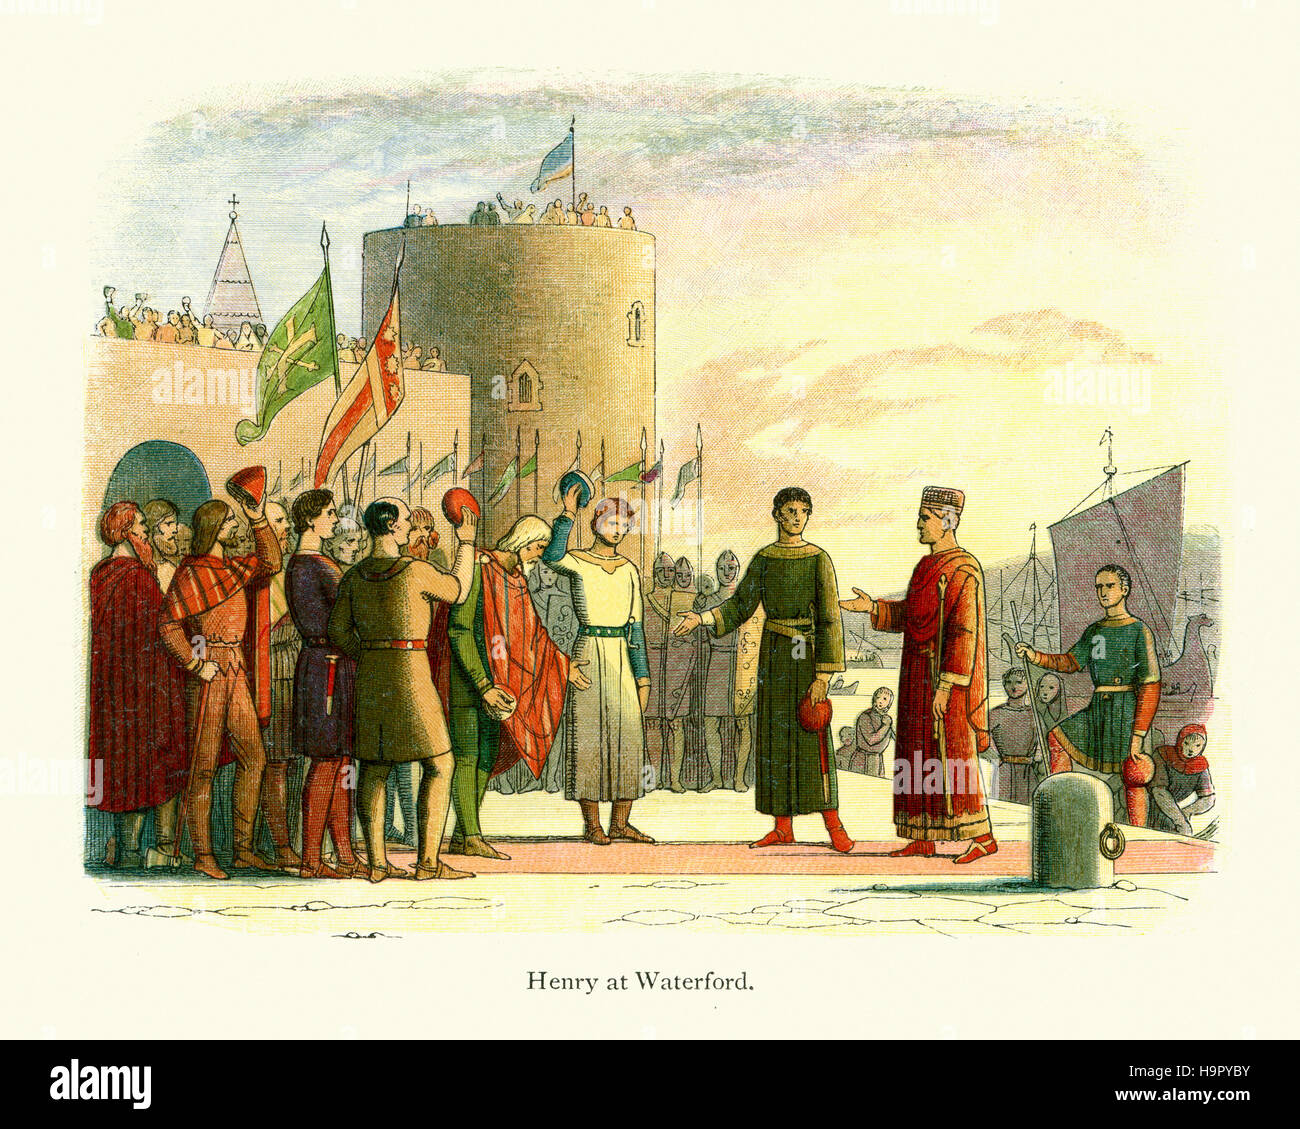 King Henry II of England landing at Waterford in Ireland. Doyle Chronicle of England - Stock Image